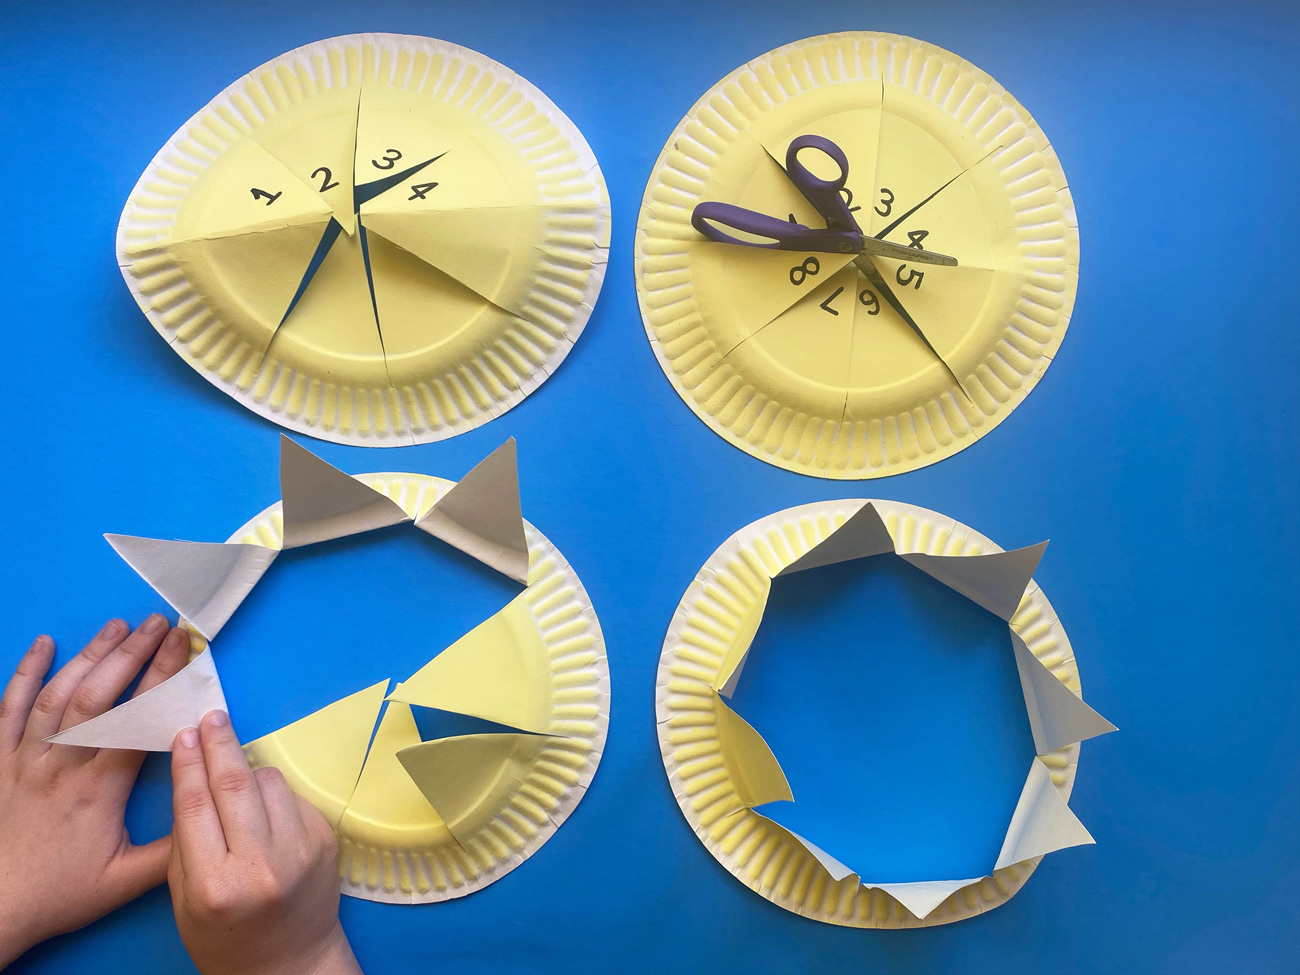 Paper plates with pie-shaped cuts being turned up to form crown points